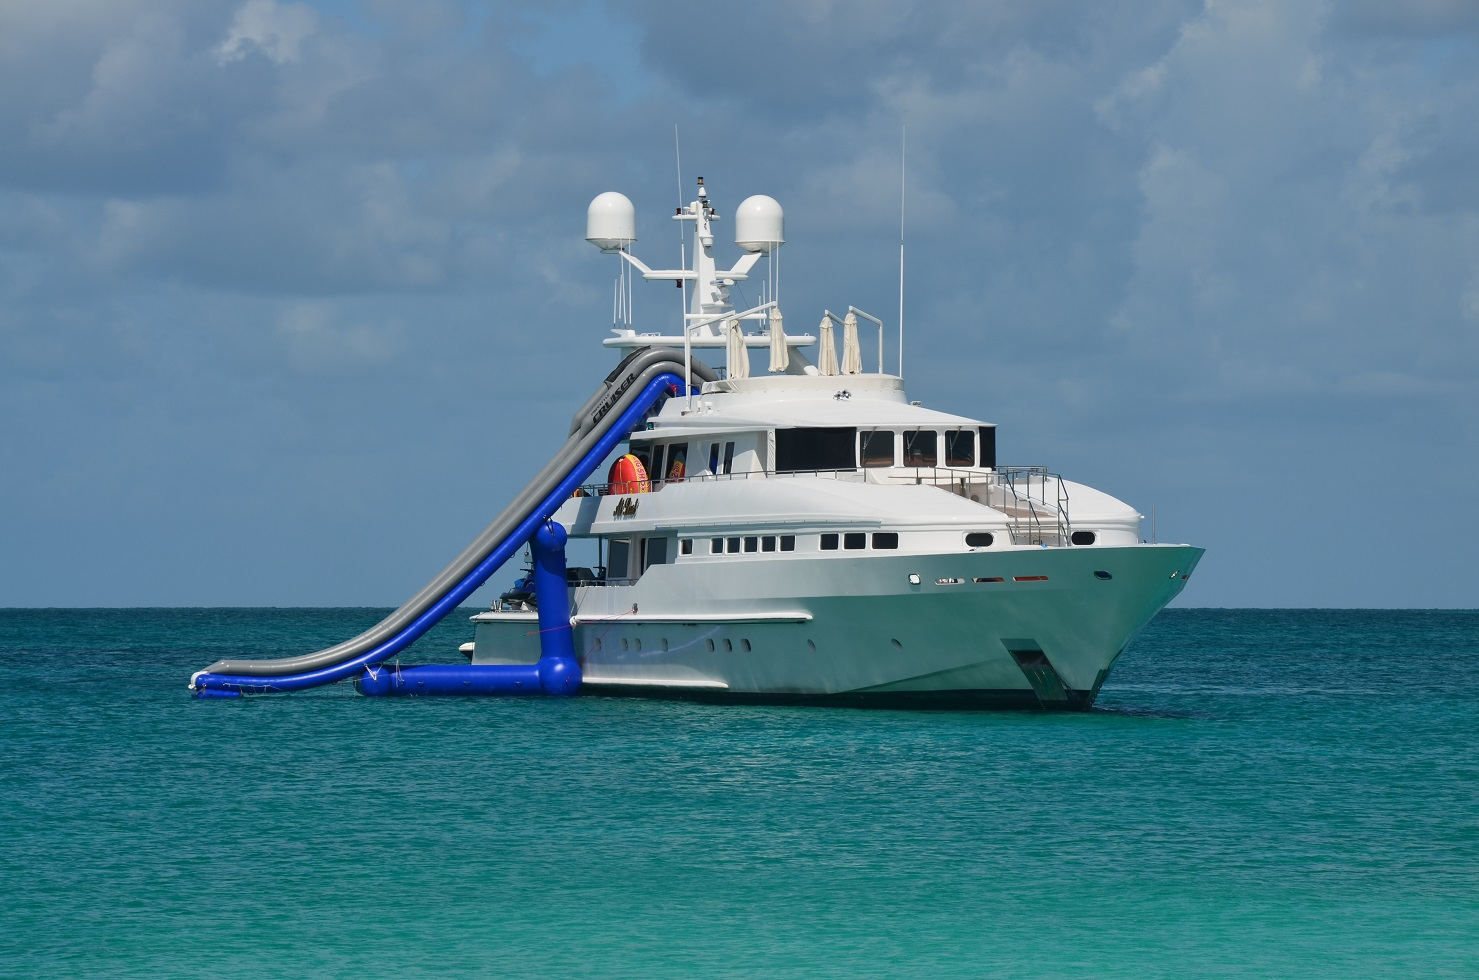 Motor yacht AT LAST - Built by Heesen